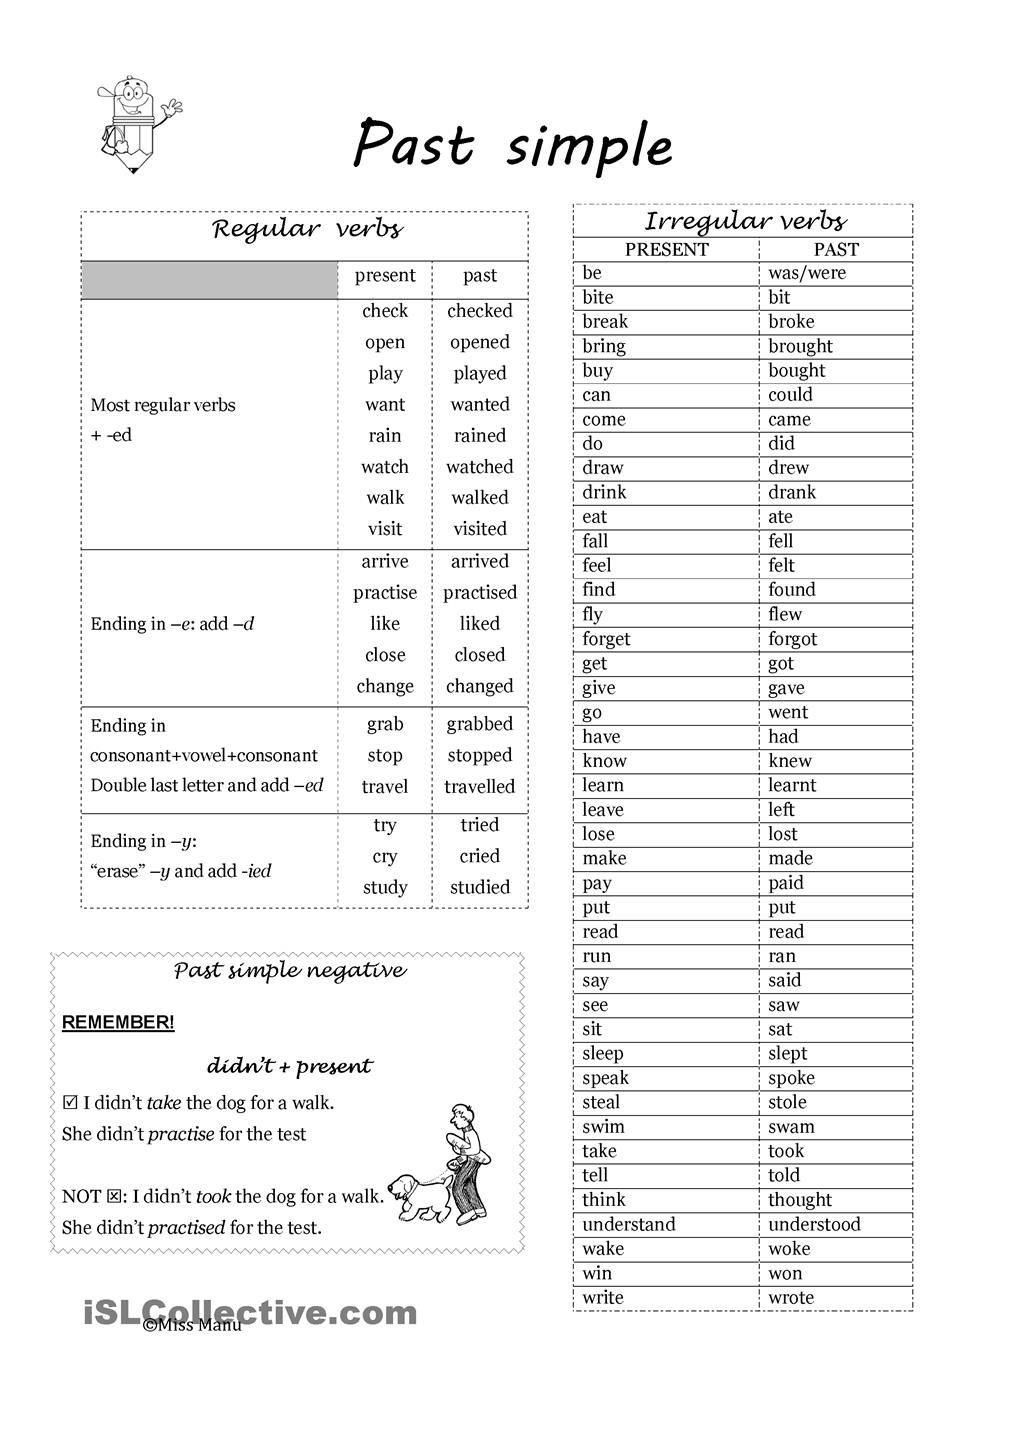 Past Simple: Regular And Irregular Verbs | Esl Worksheets Of The Day | Free Printable Irregular Verb Worksheets